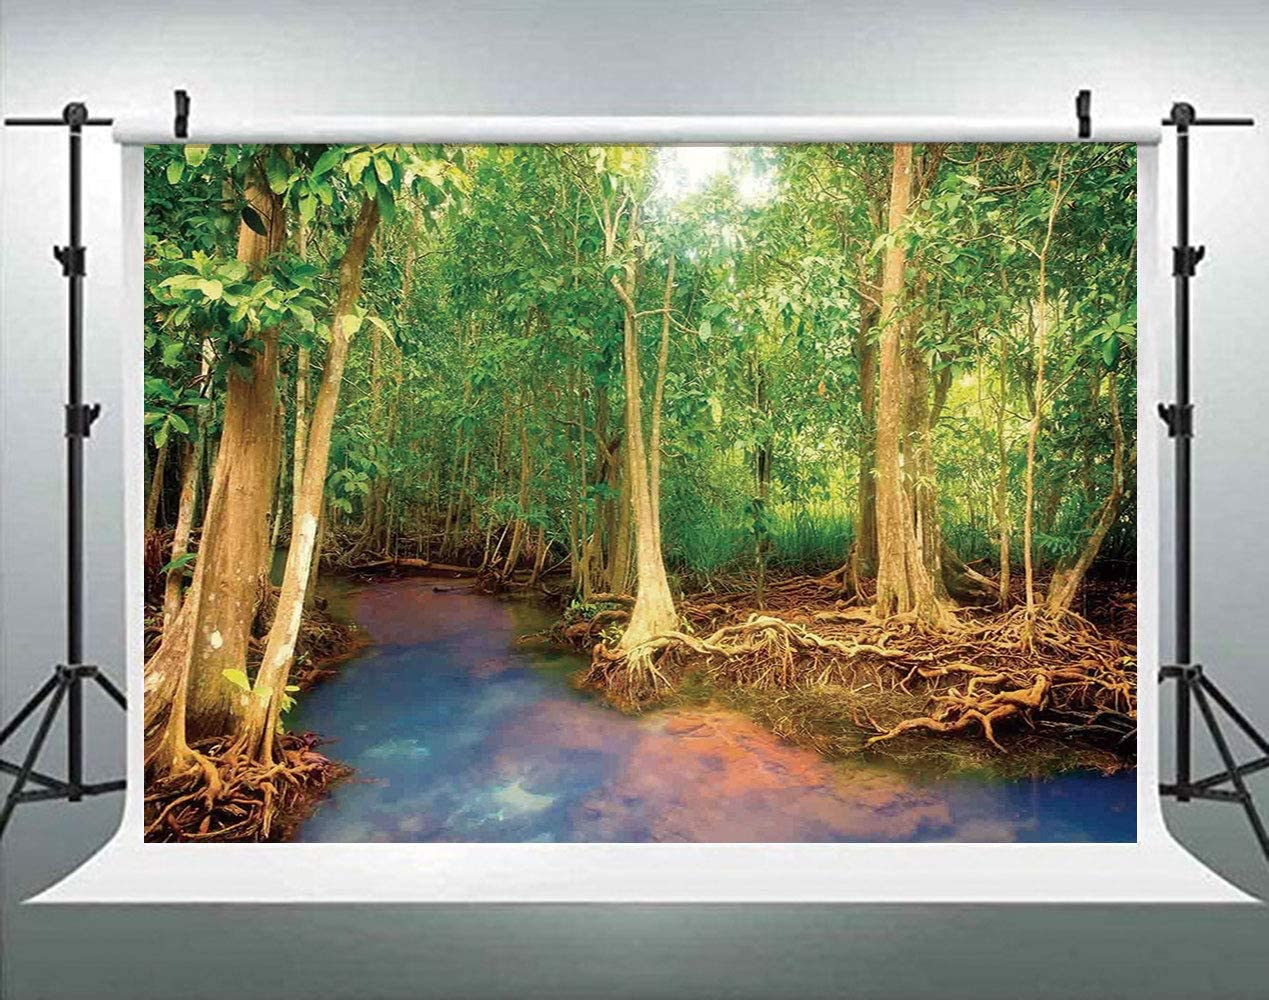 ALUONI 5x3ft Rainforest Decorations,Pongour Waterfall Exotic Asian Natural Beauty Photography Backdrop Photo Backdrops Portrait Background Studio Props AM027471